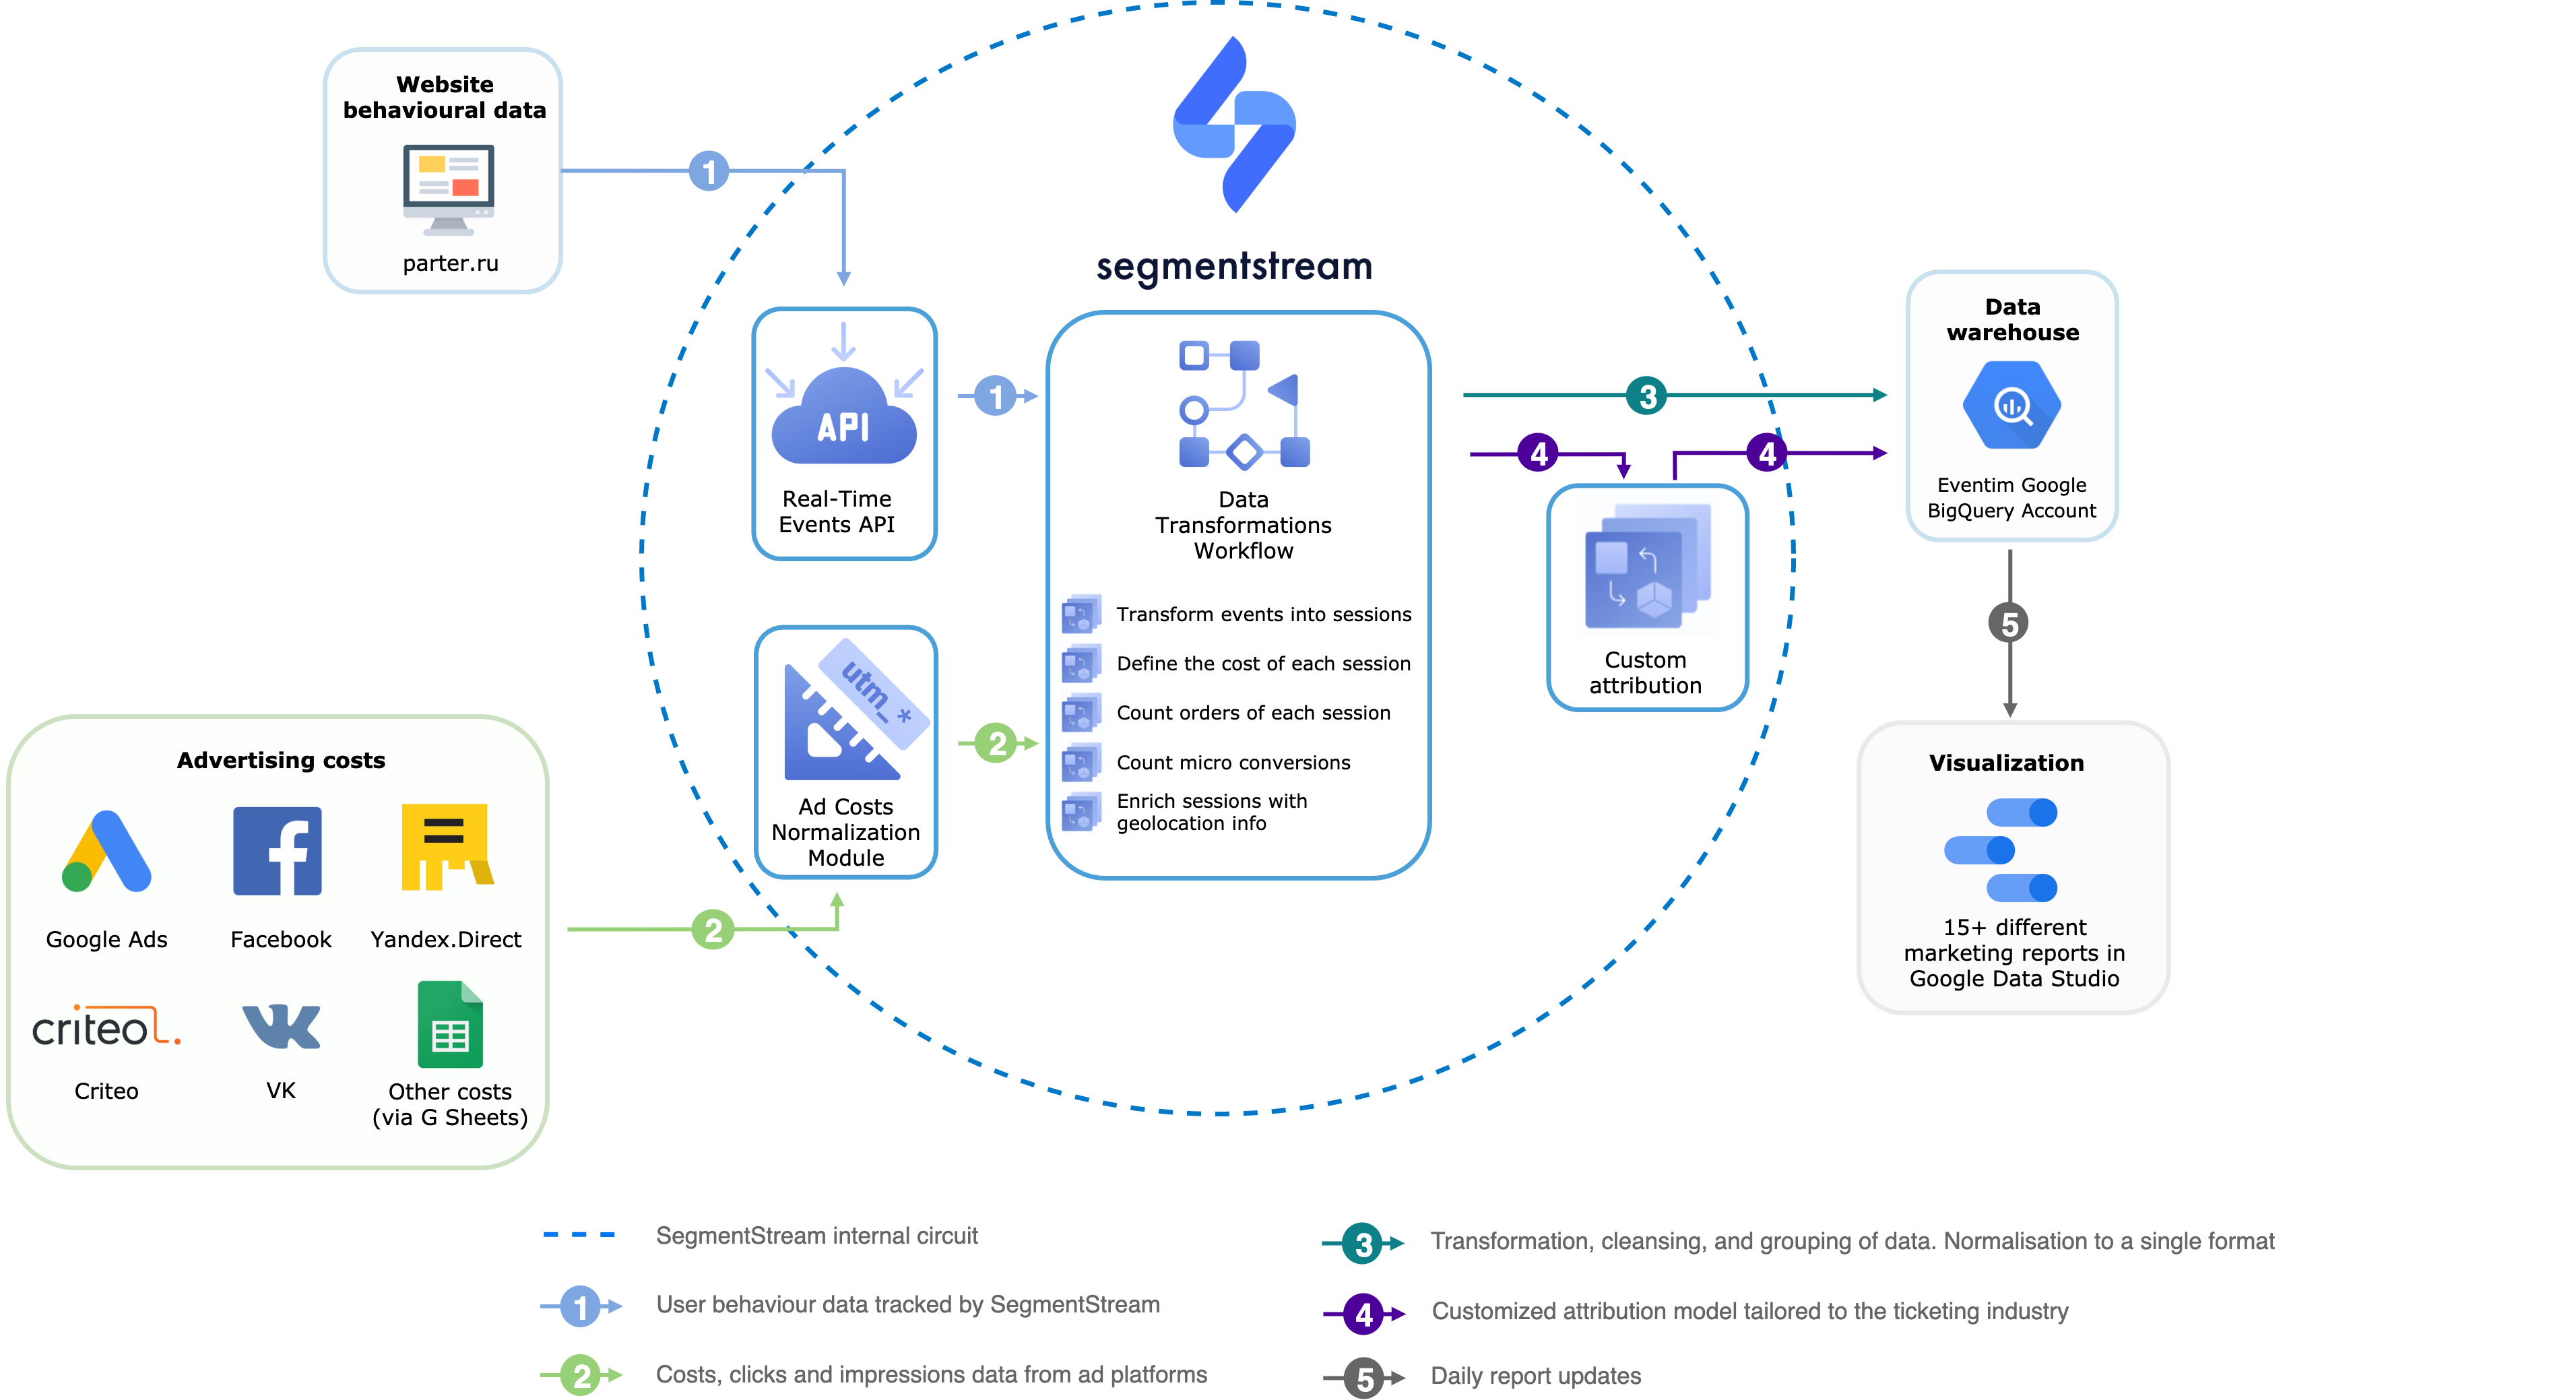 Overall SegmentStraem solution architecture for the Parter.ru (Eventim)